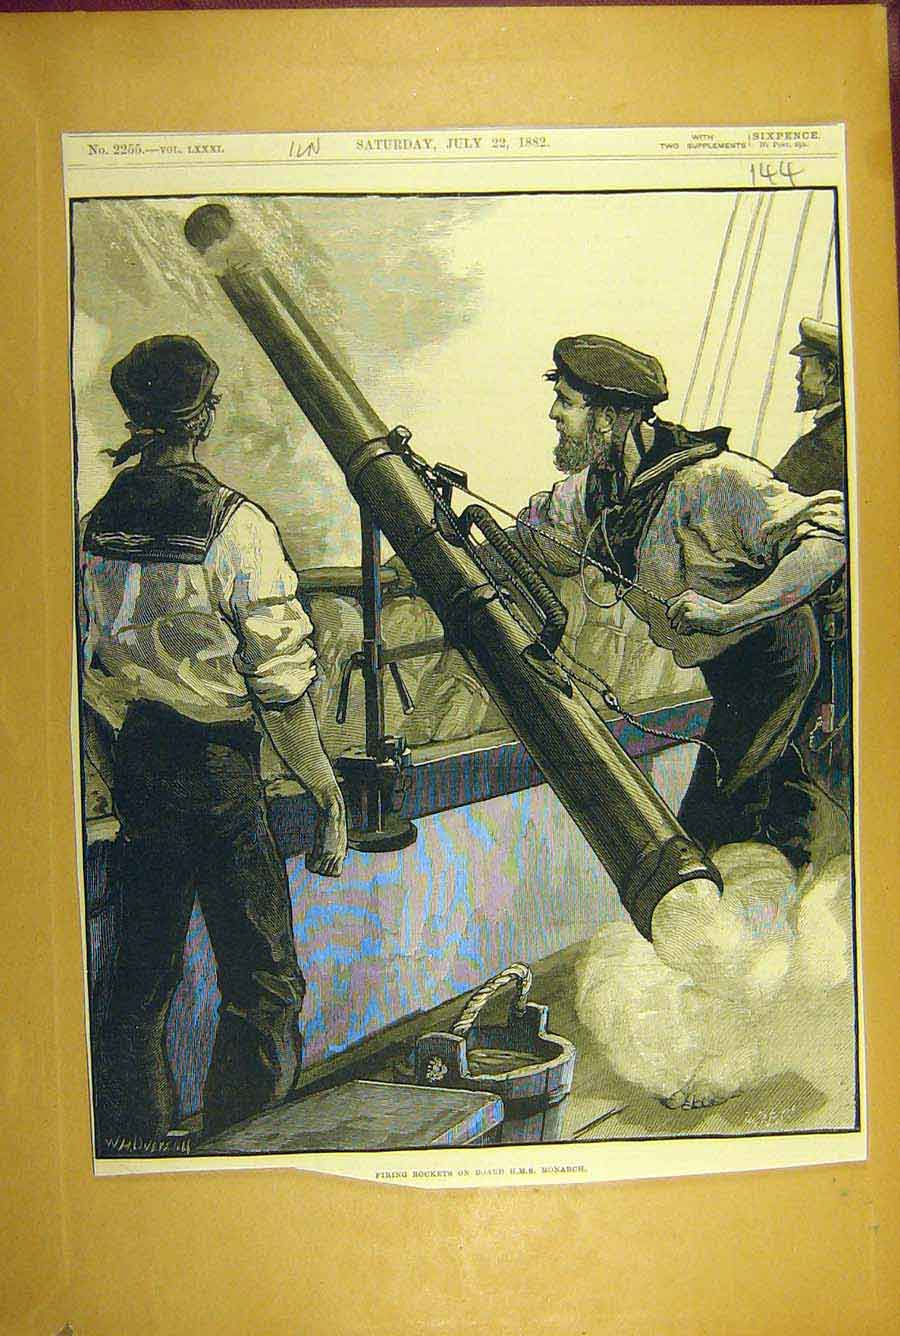 Print 1882 Firing Rockets Hms Monarch Training Naval 448781 Old Original